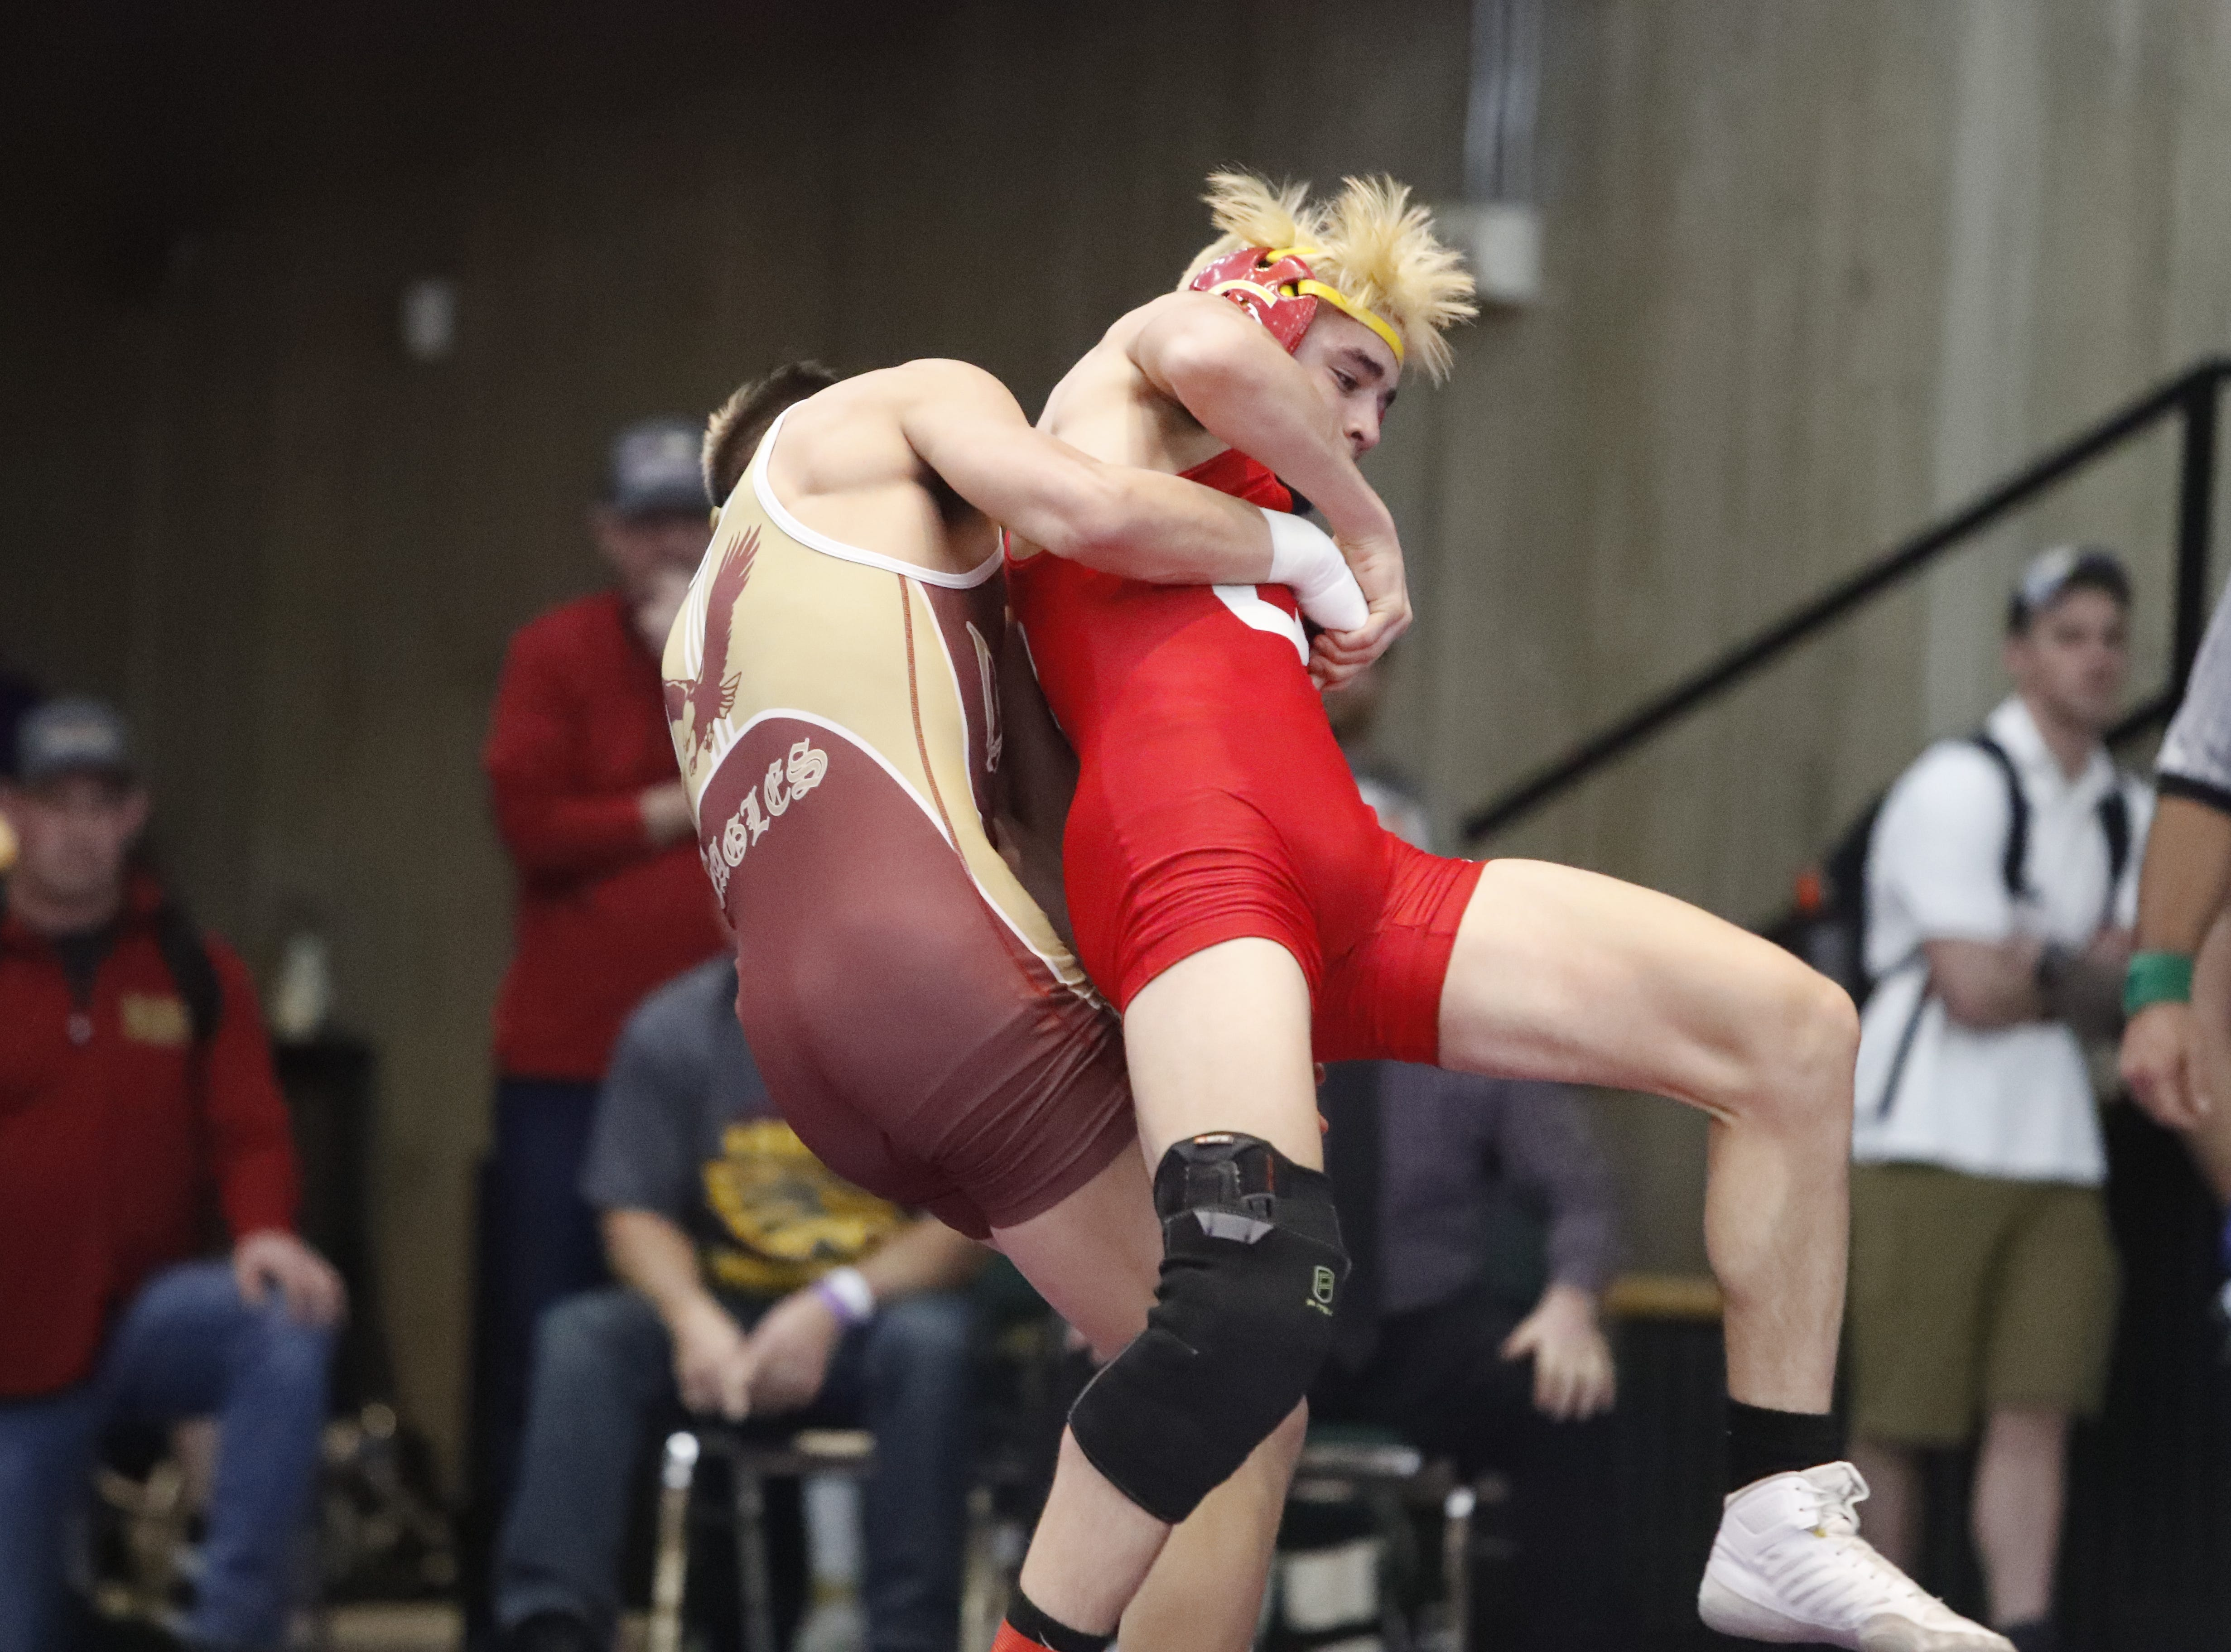 West Valley's Rocky Raby (left) tries to bring down Chico's Alex Rudkin to win the 132-pound Northern Section championship on Friday, Feb. 15, at the Redding Civic Auditorium.